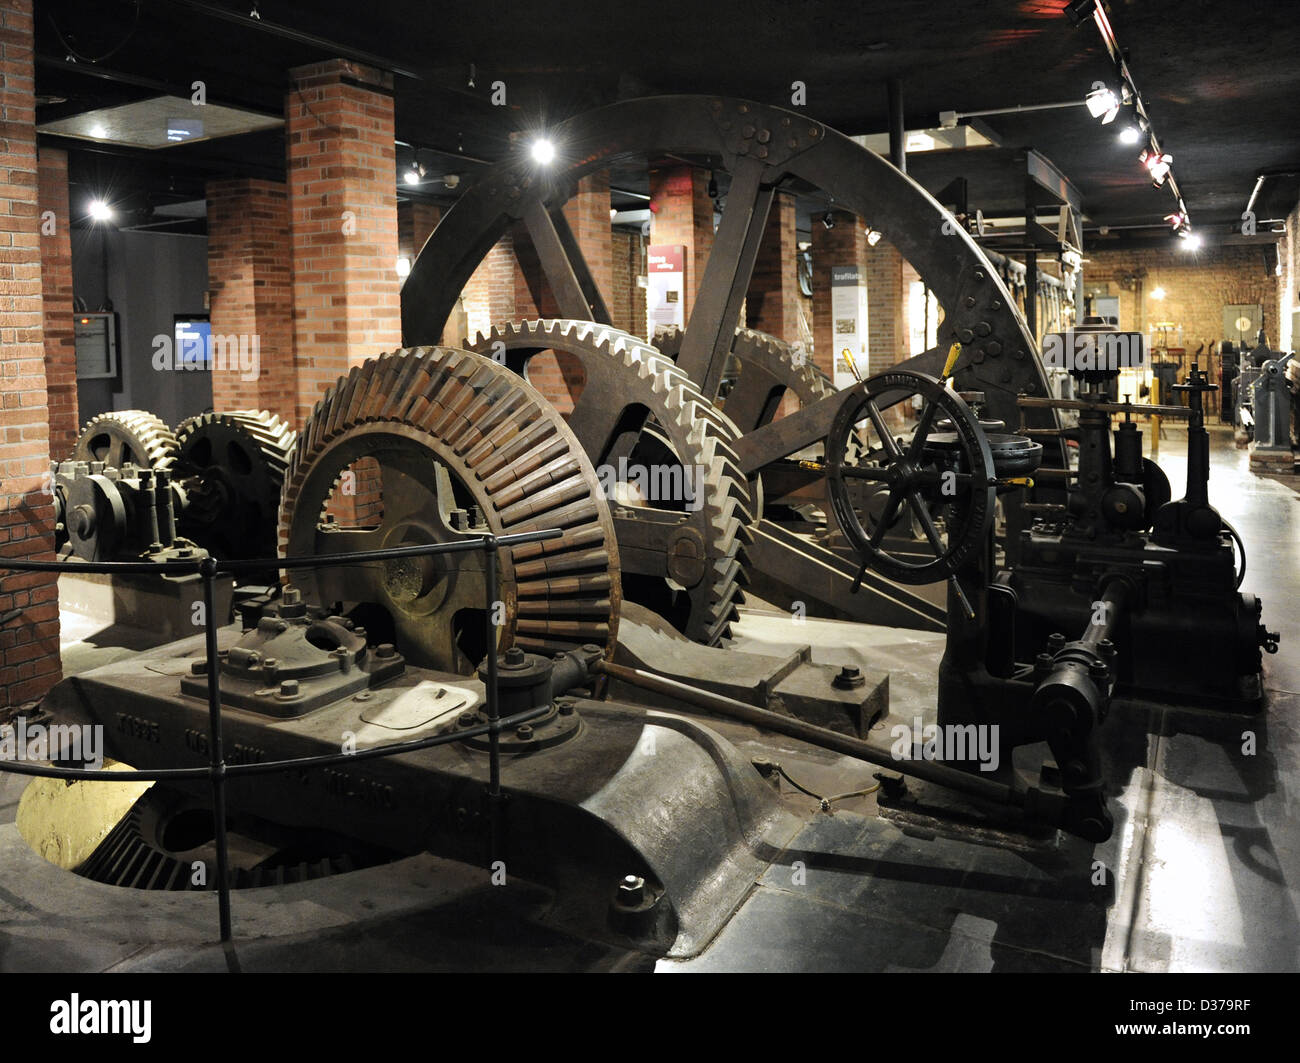 Transmission group of the rollin mill Falk, made in 1867 in the Ferriera Vobarnese. It was used till 1956. - Stock Image